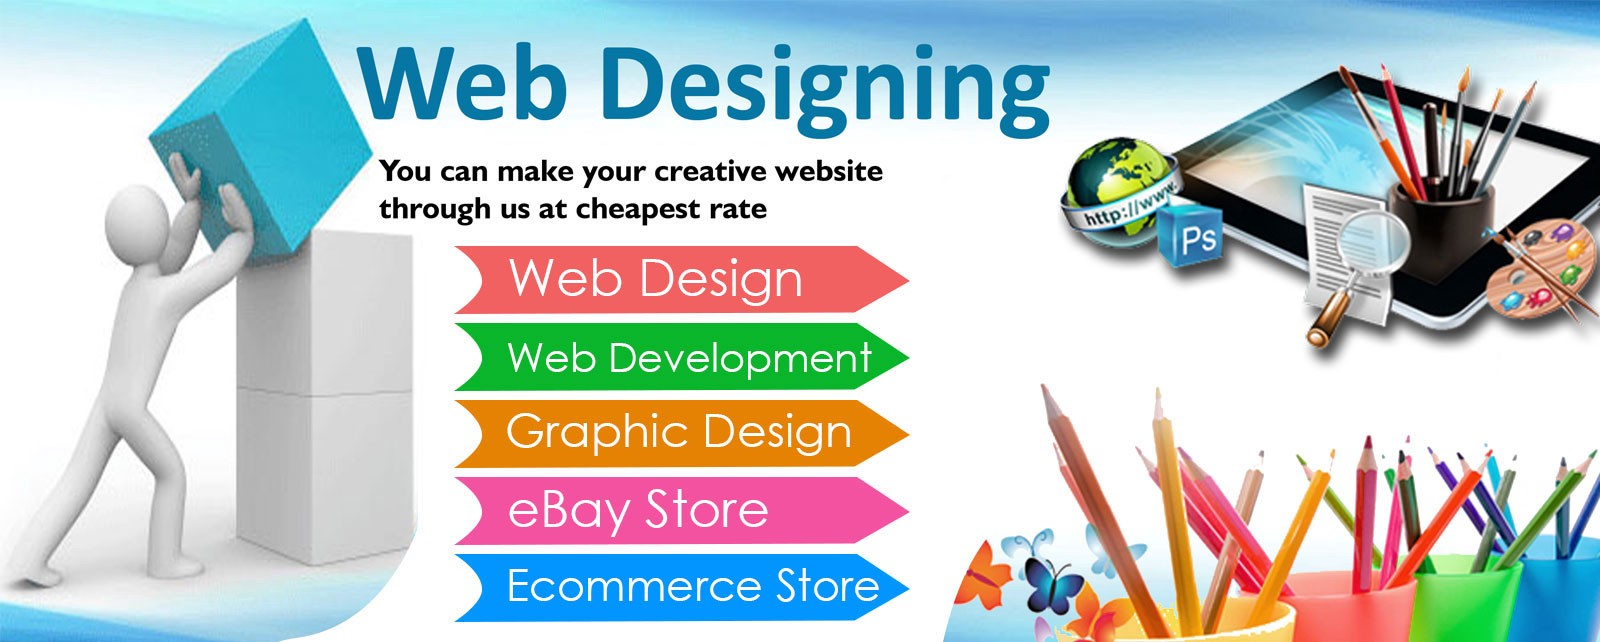 The best web design and development agency in Pakistan. | by Commix  Operator | Medium